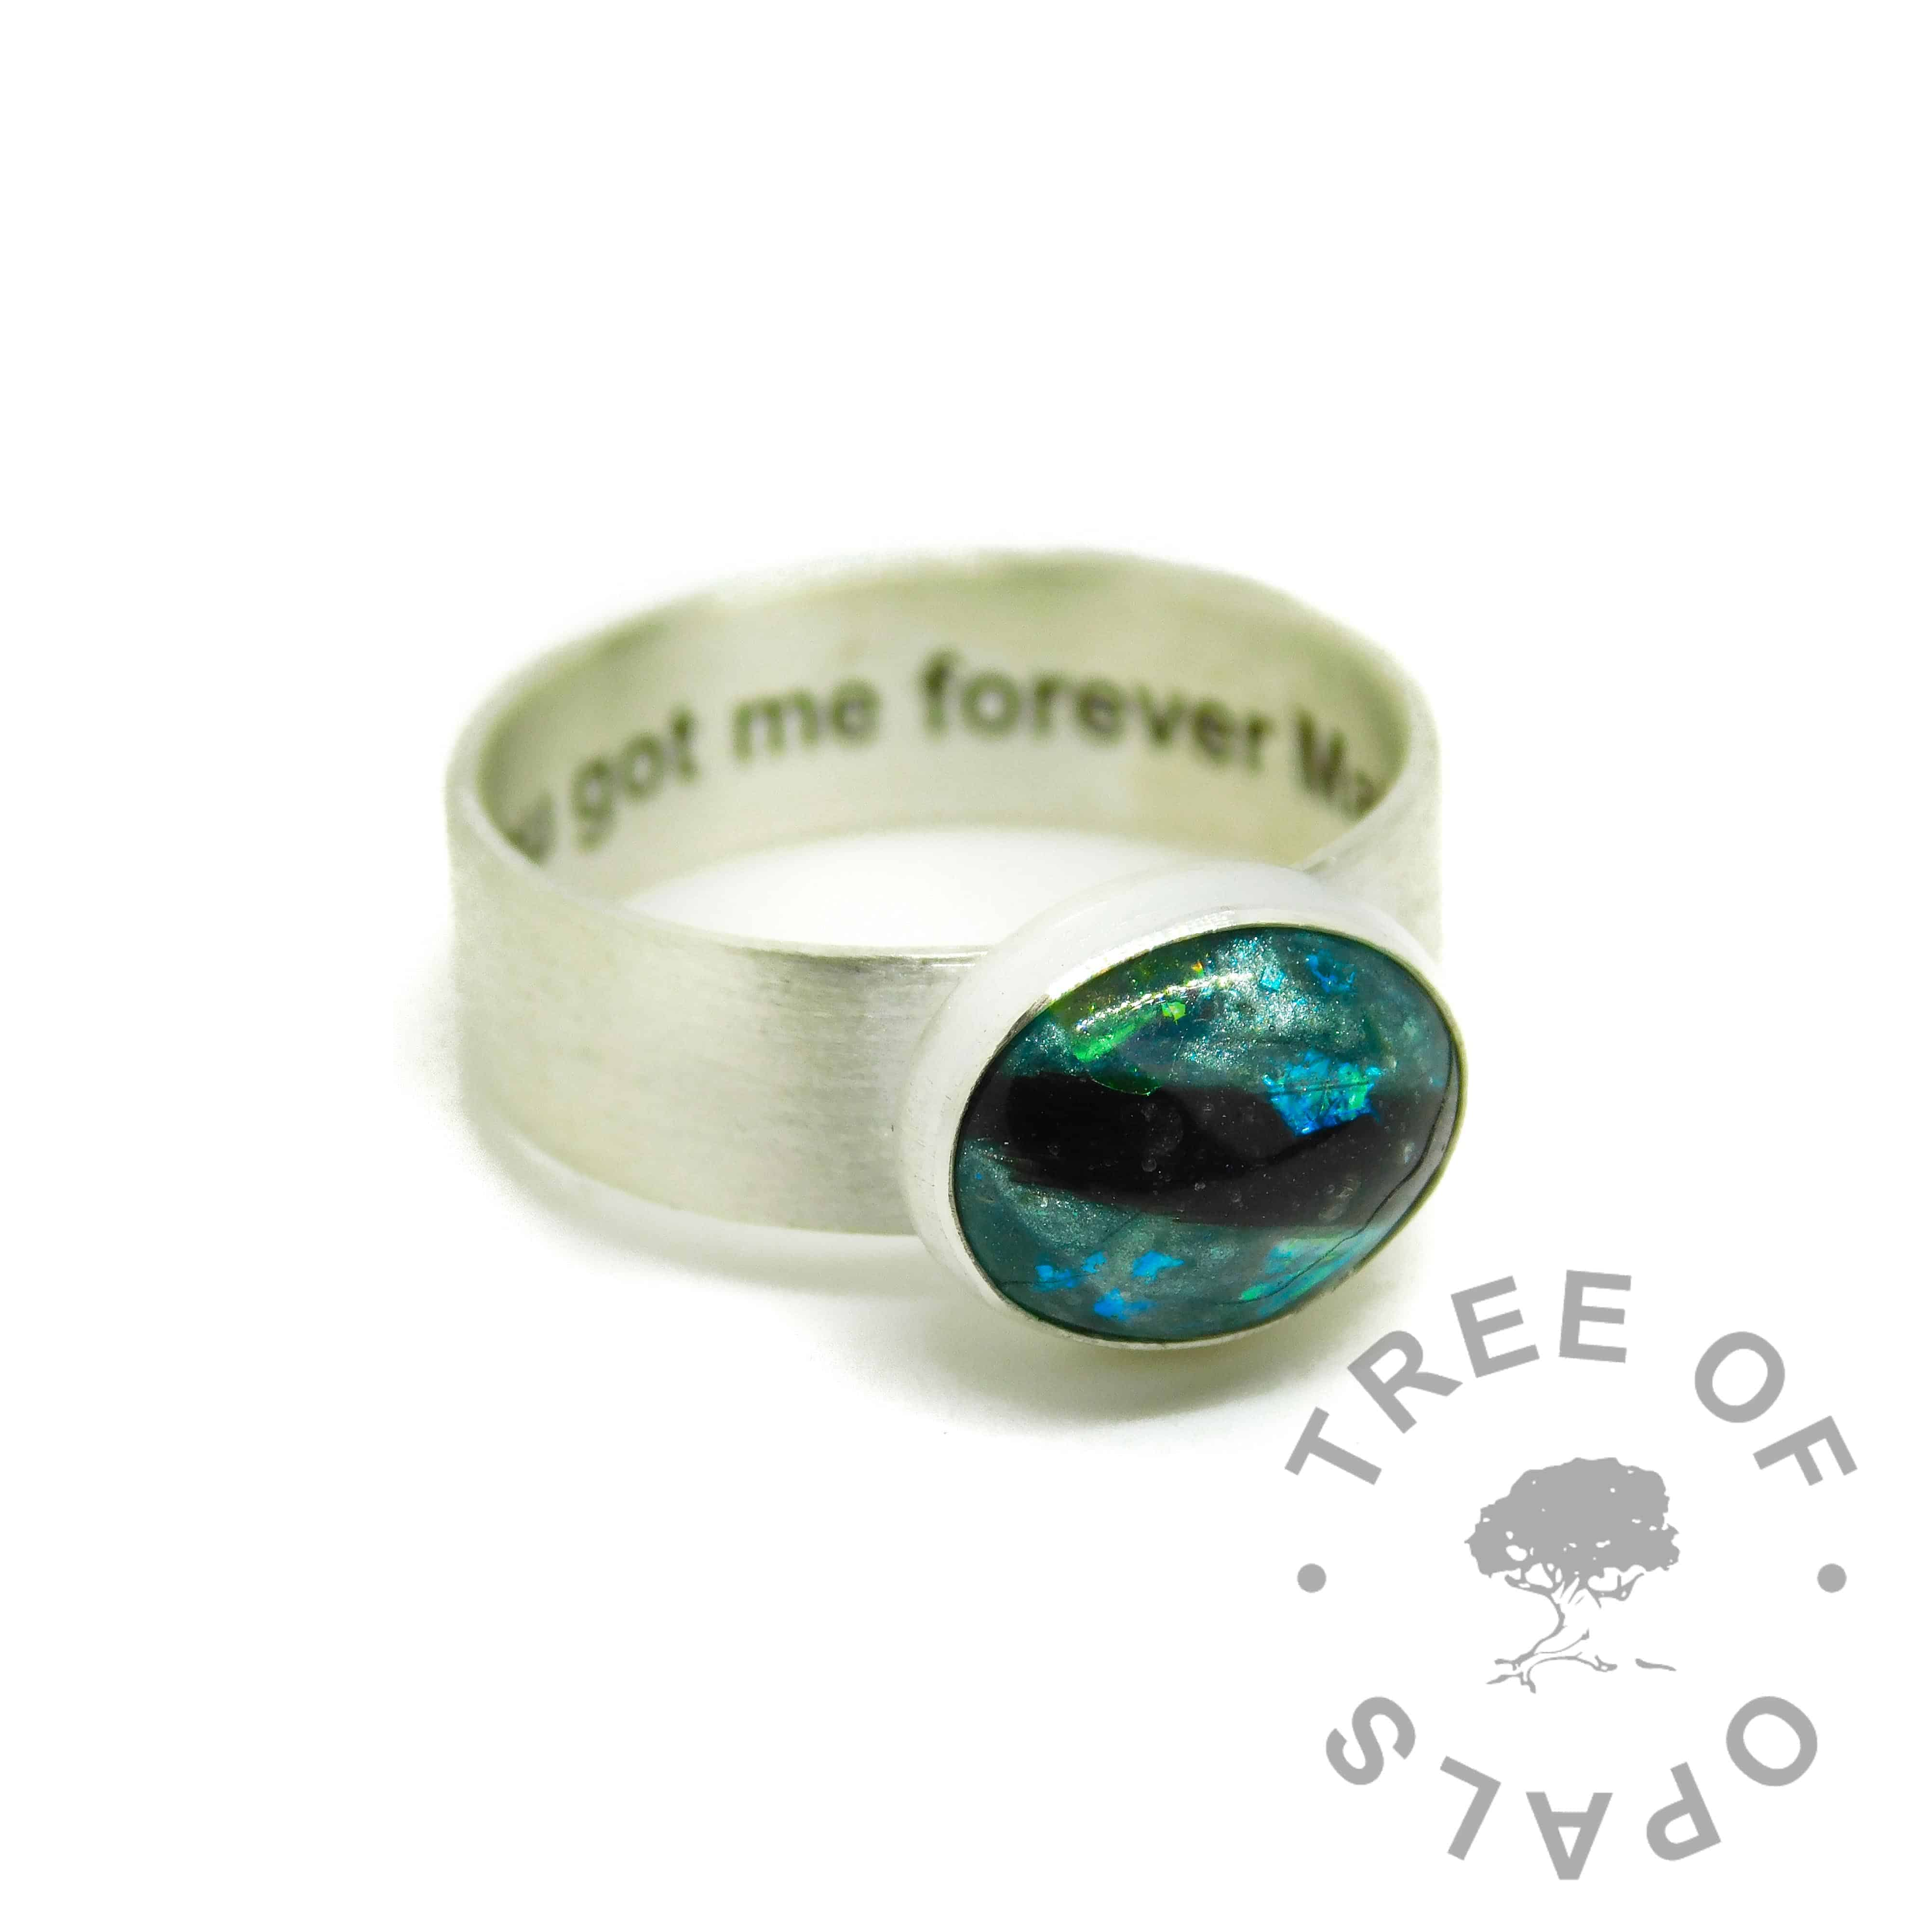 mermaid teal resin sparkle mix and hair ring, 6mm wide shiny band engraved inside with arial font